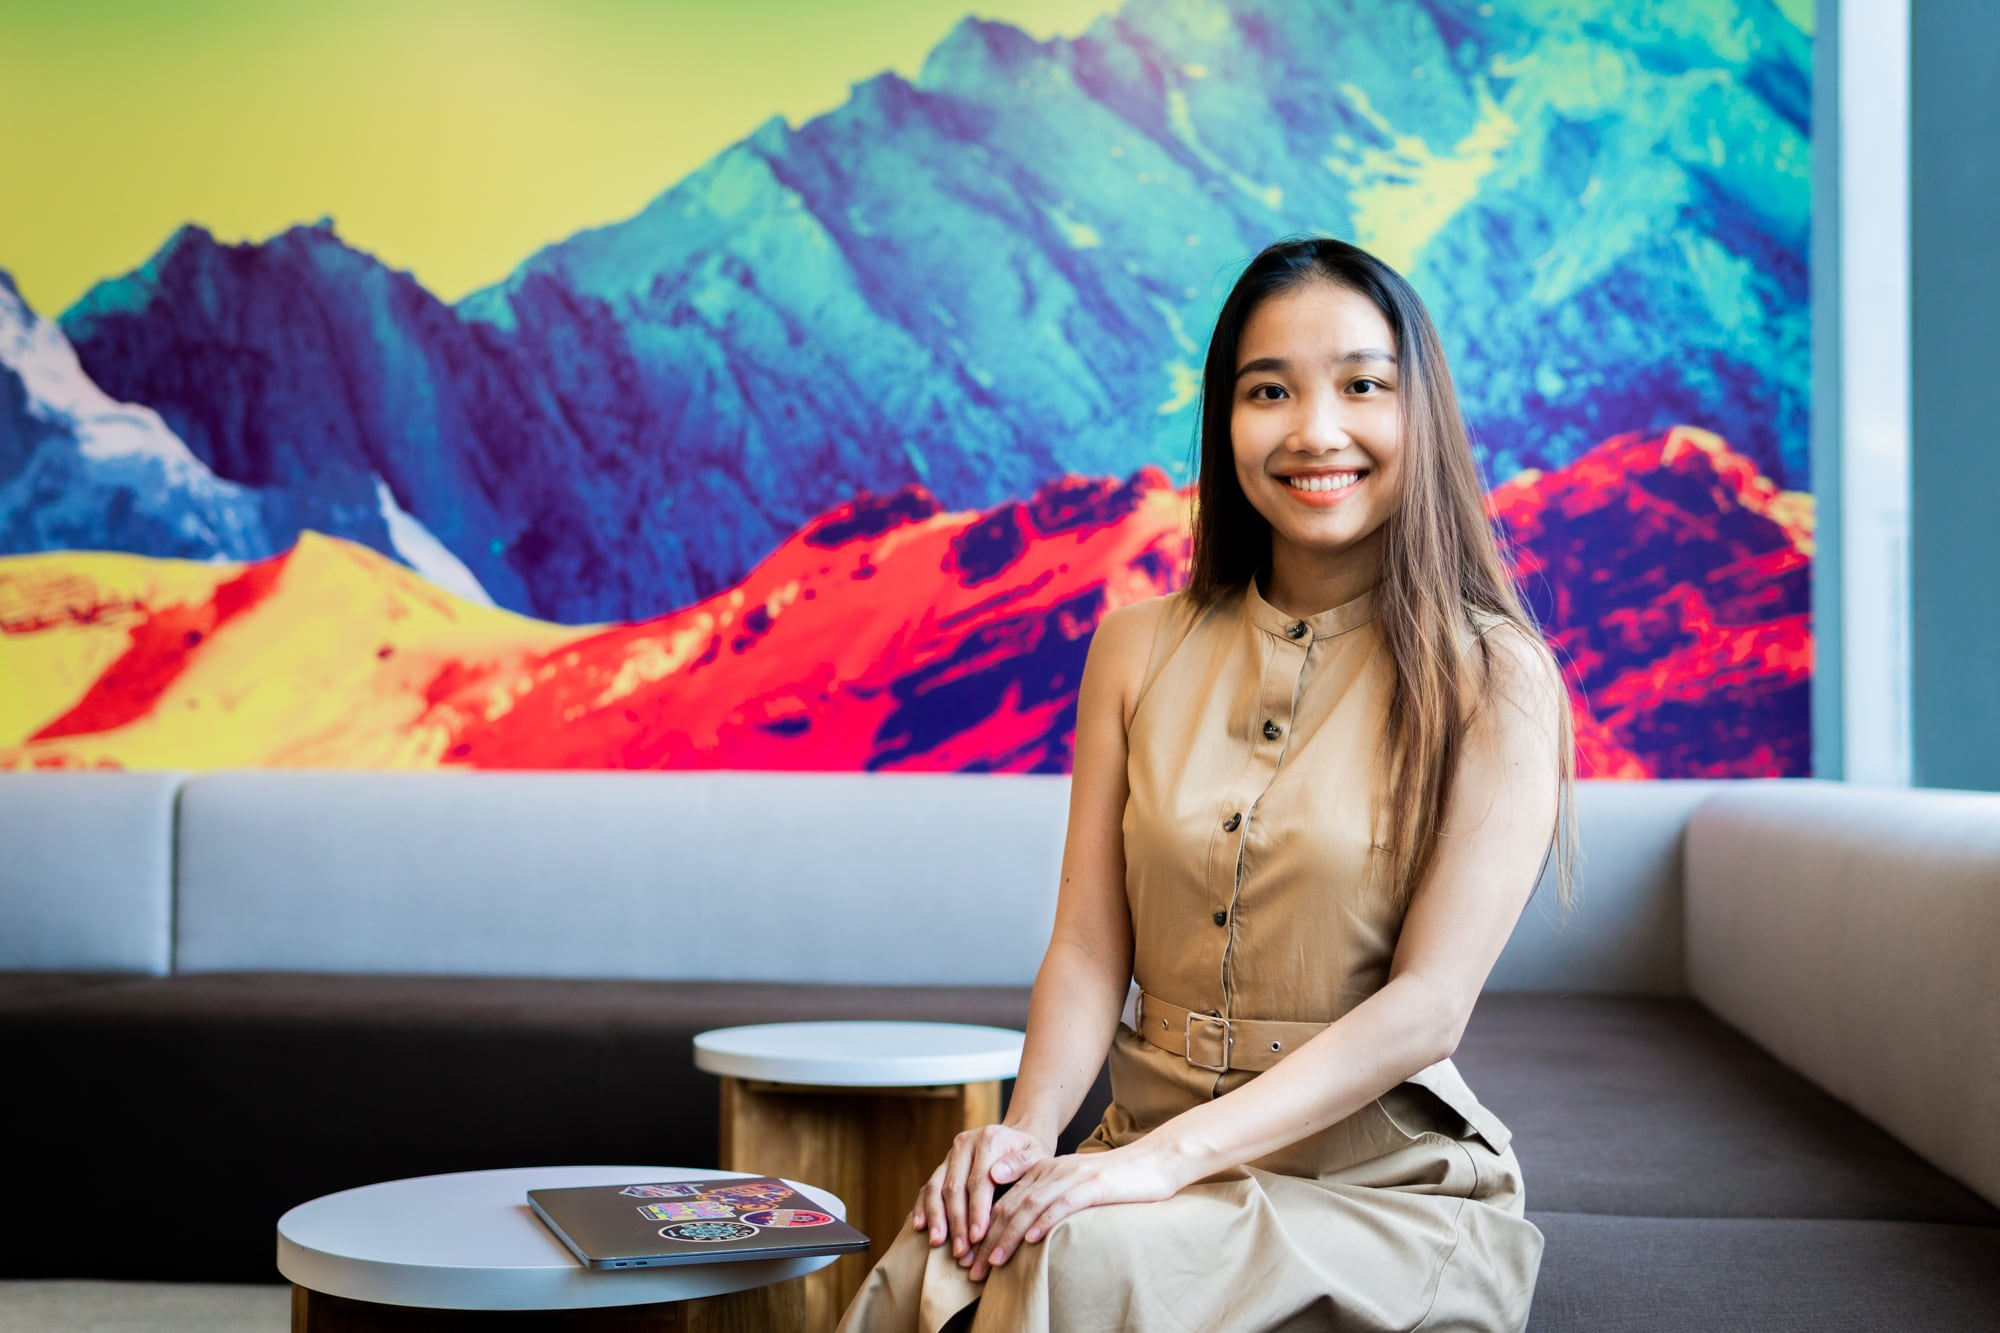 A Working Woman: Xuan Nguyen, Co-Founder Of Fonos And Banh Mi 362